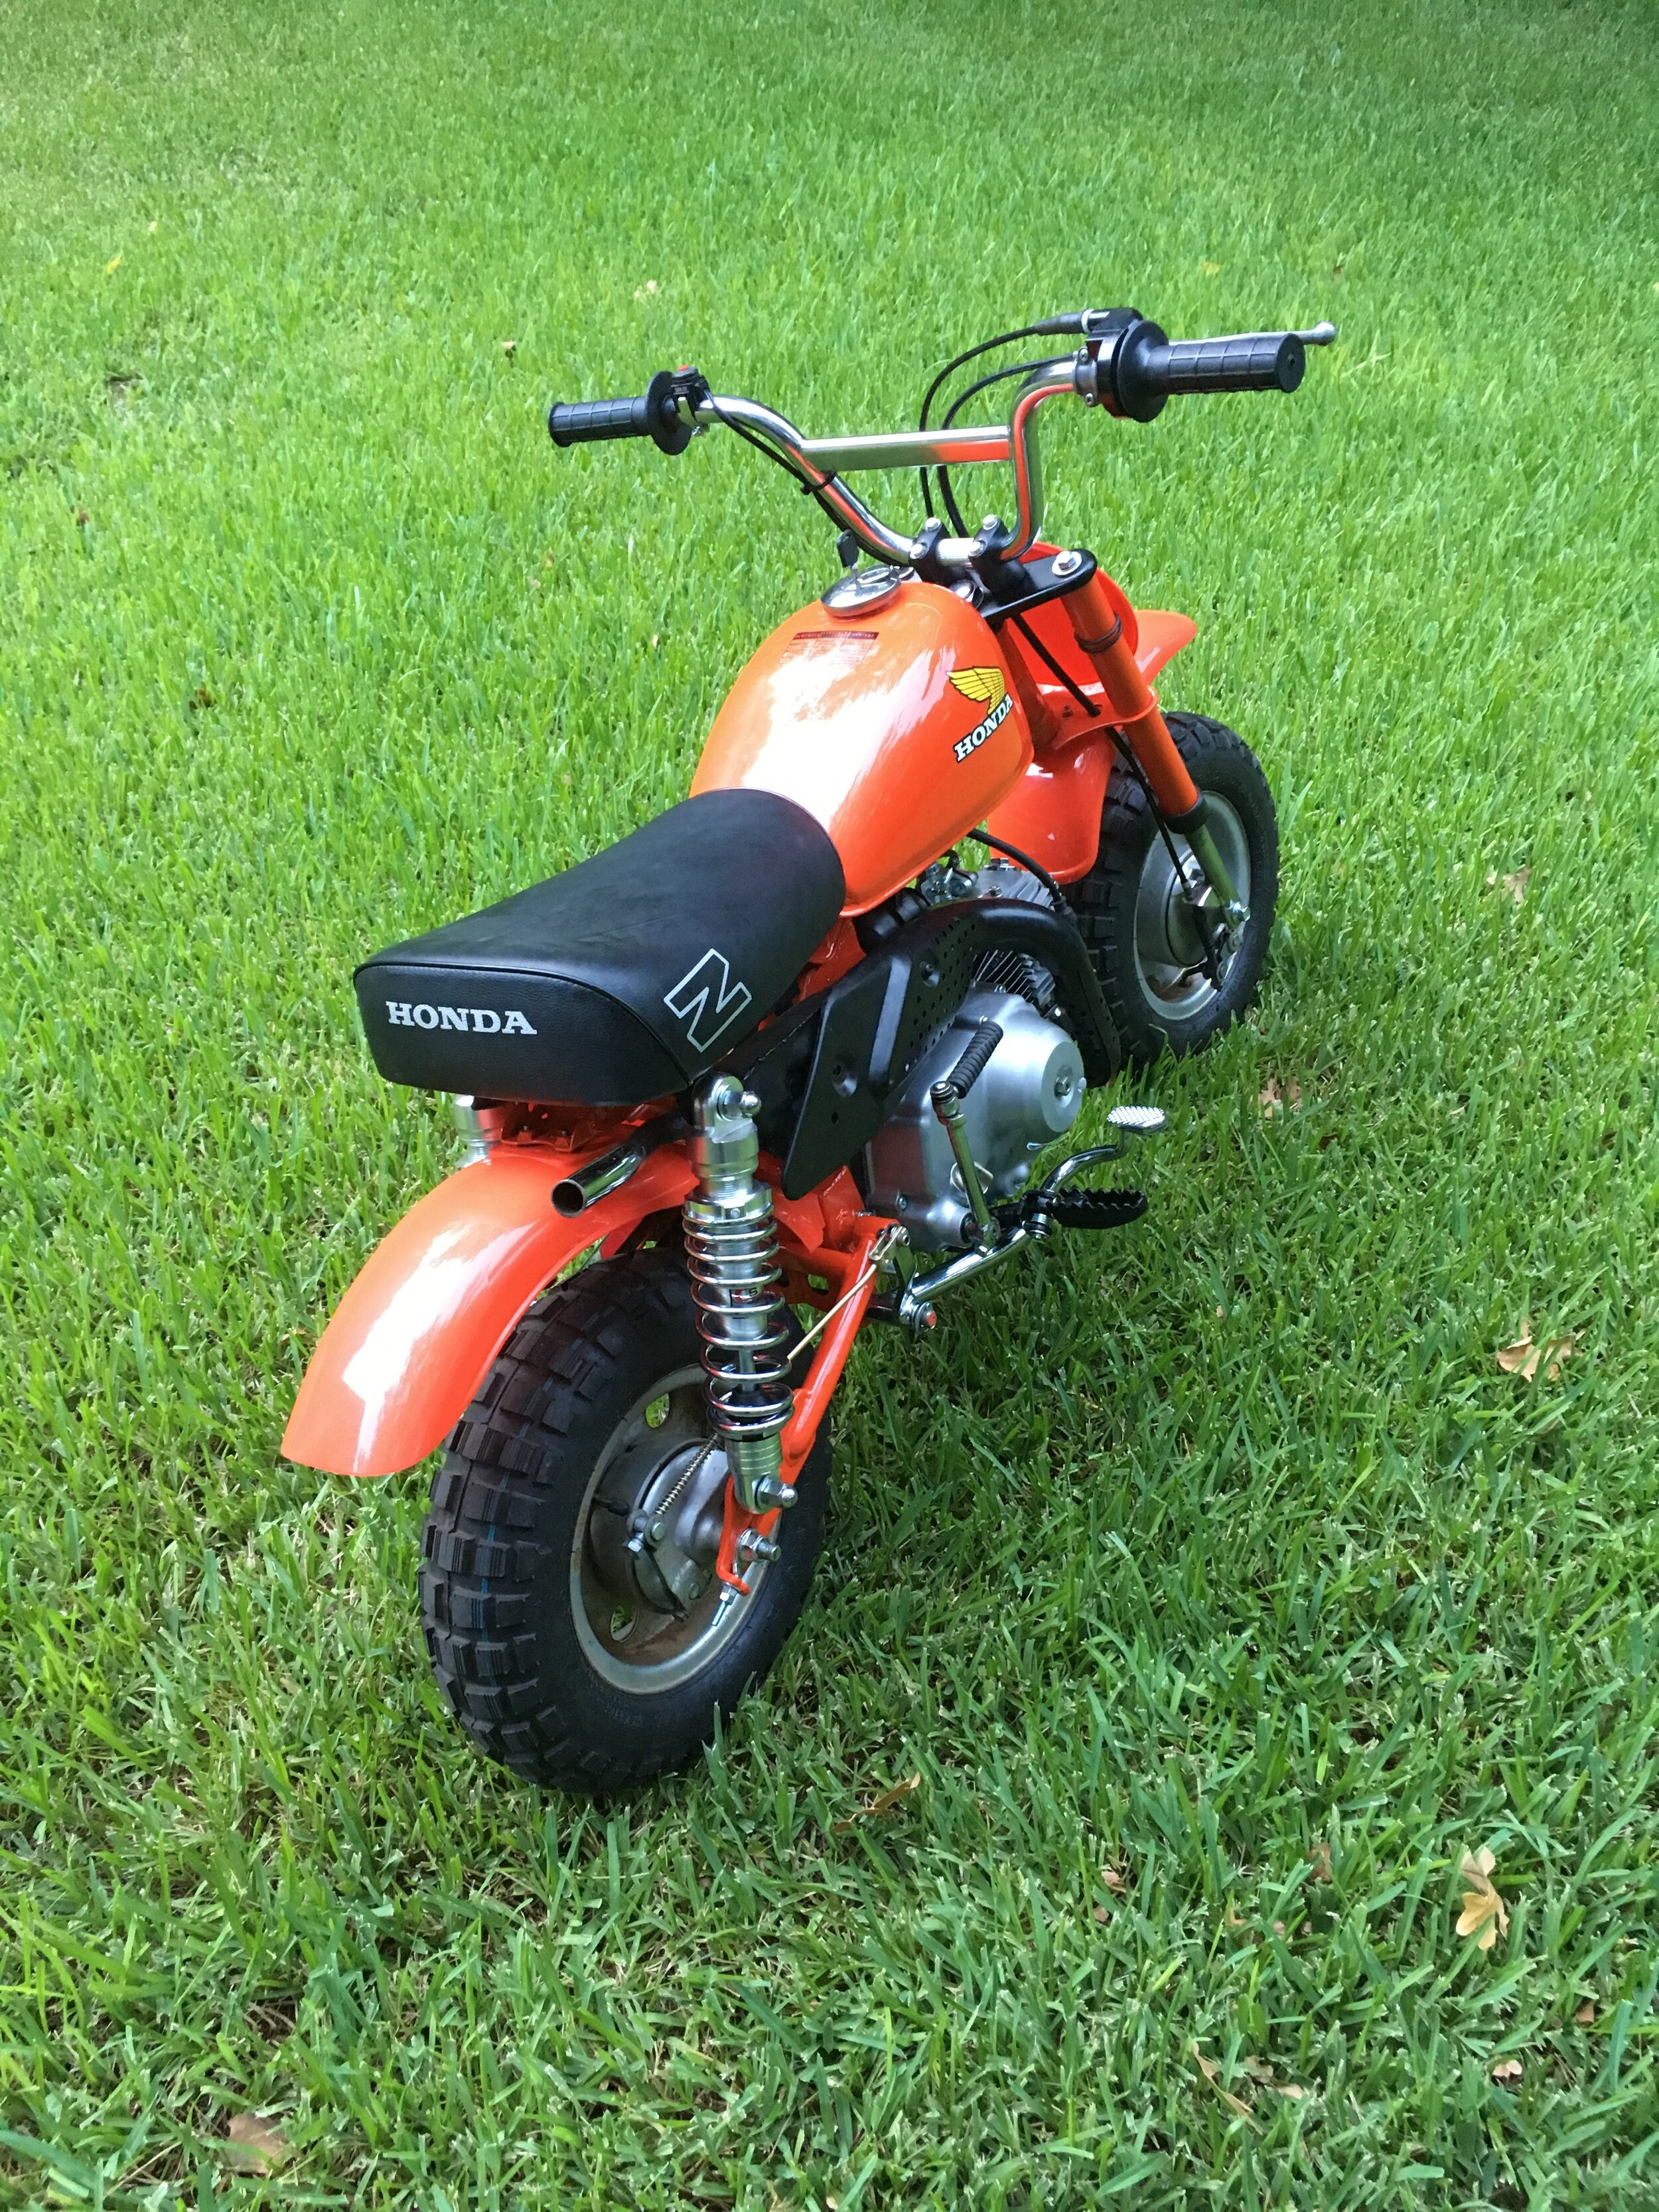 The 1979 is a transition year. The very first Z50R, but retaining some gear from the 1972-1978 early soft tails like the wheels and hubs, the rear brake pedal (painted black) and rod, and a similar muffler to the 72-78, leaving off the number plate on the right side that the later 1980-1987 Z50R models had. The muffler guard appears to be from a 1988-1999 model, but it is fine with the owner for now. The original seat would have had no logos on the sides, this one appears to be a repop. The bike took third place in the minibike category at the Land of the Pines rallye,